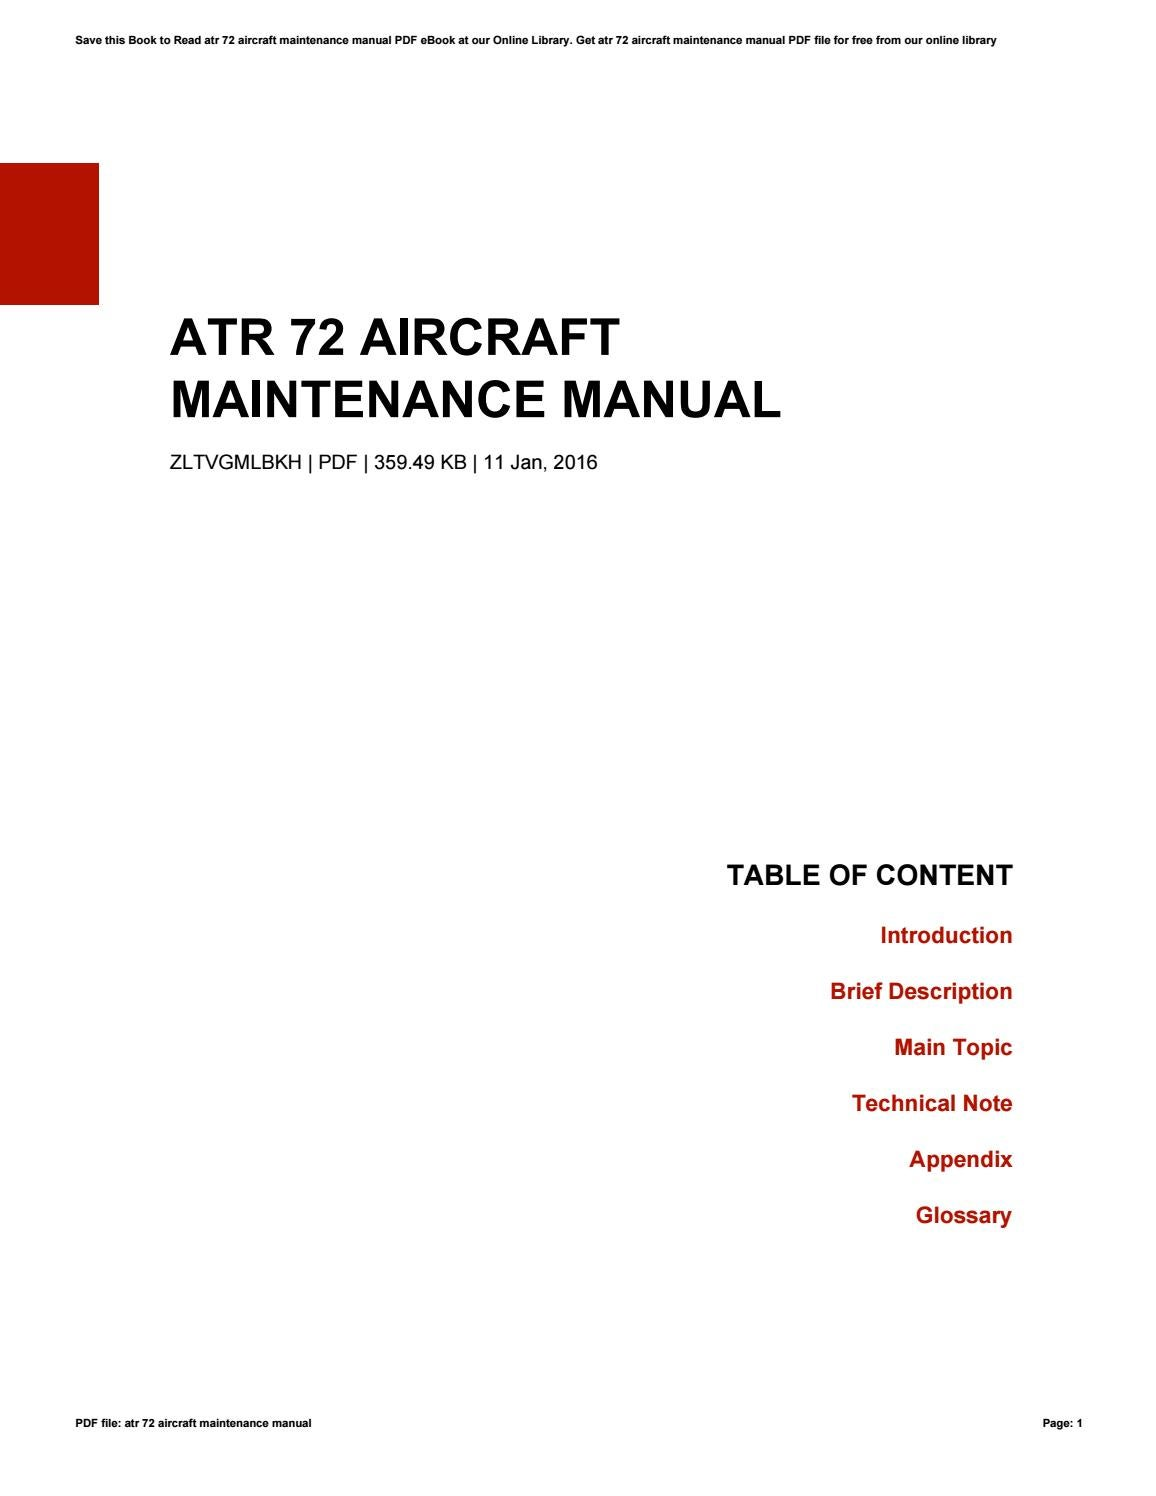 Atr 72 aircraft maintenance manual by ErnestMcDowell4614